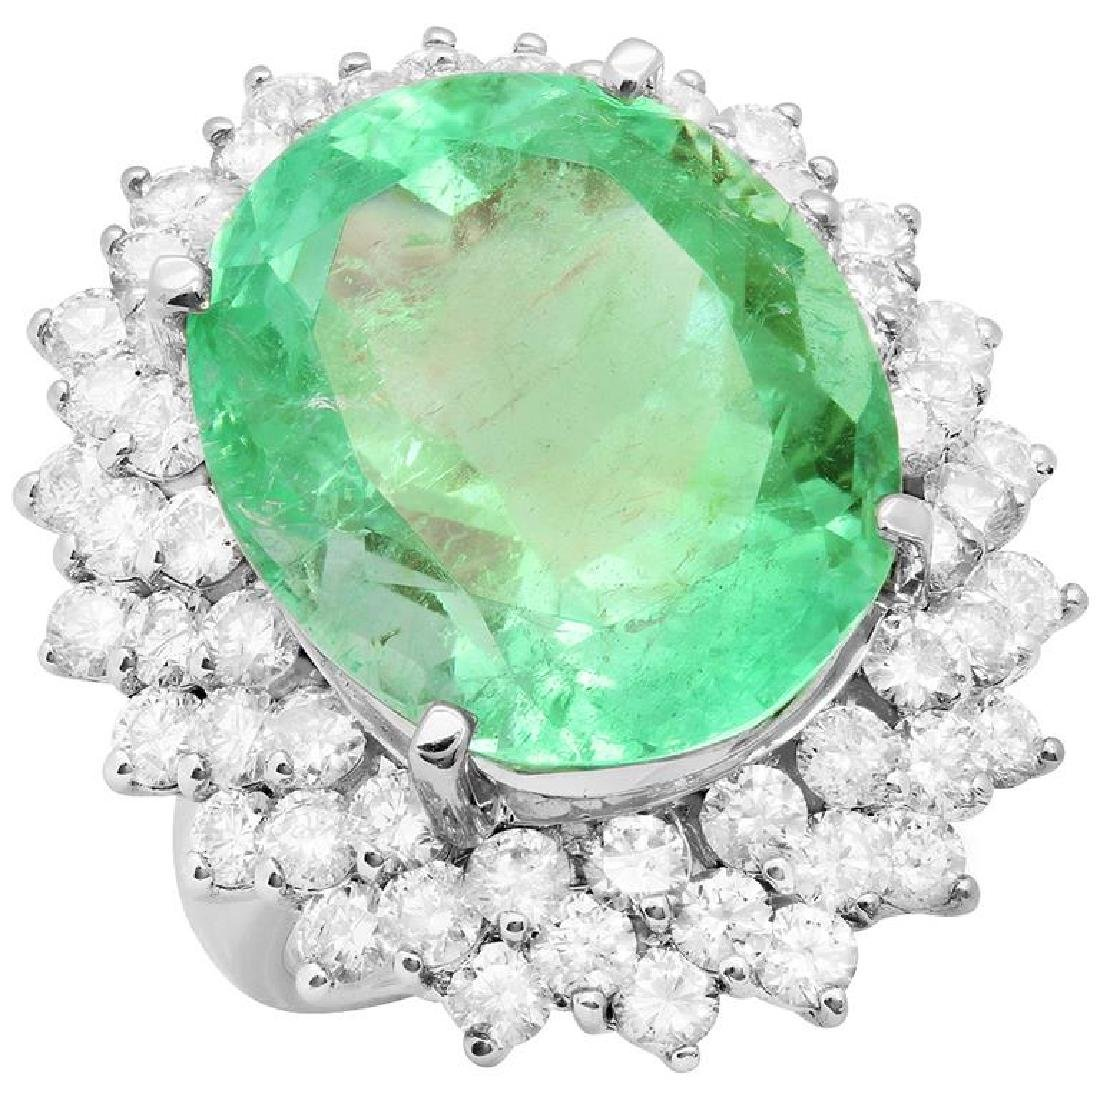 14k White Gold 24.41ct Emerald 4.49ct Diamond Ring